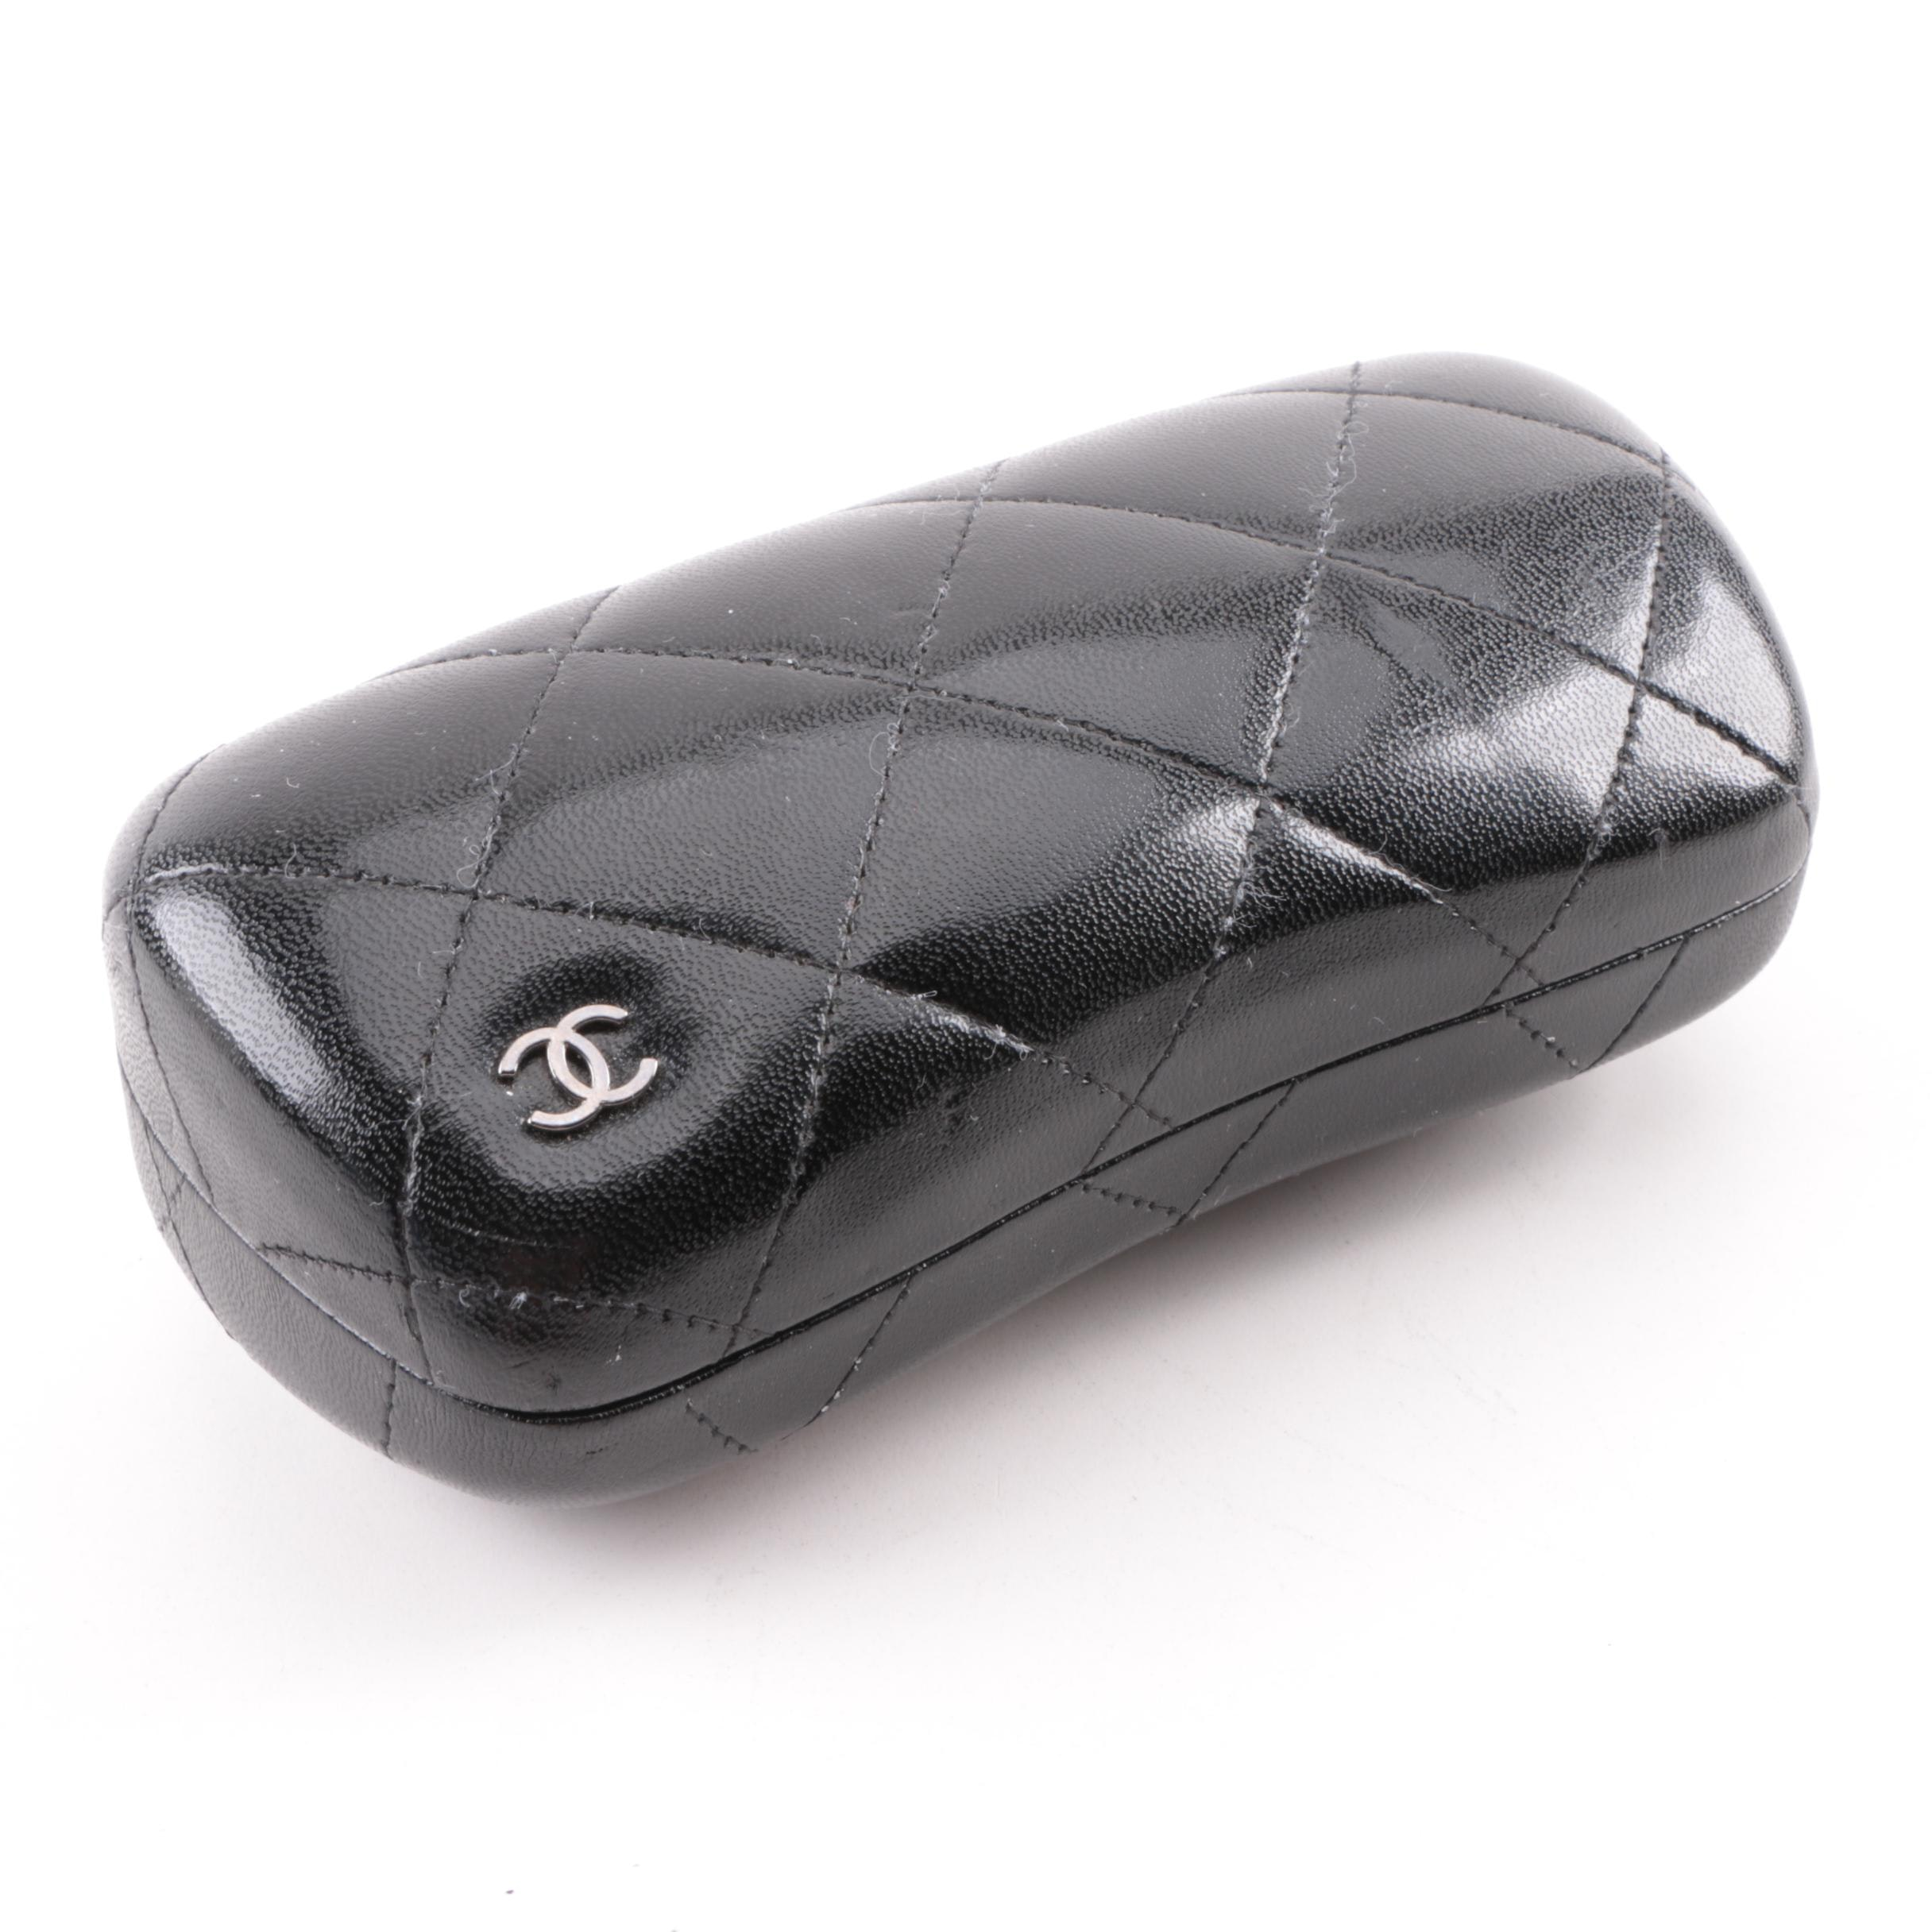 Chanel Black Quilted Leather Sunglasses Case